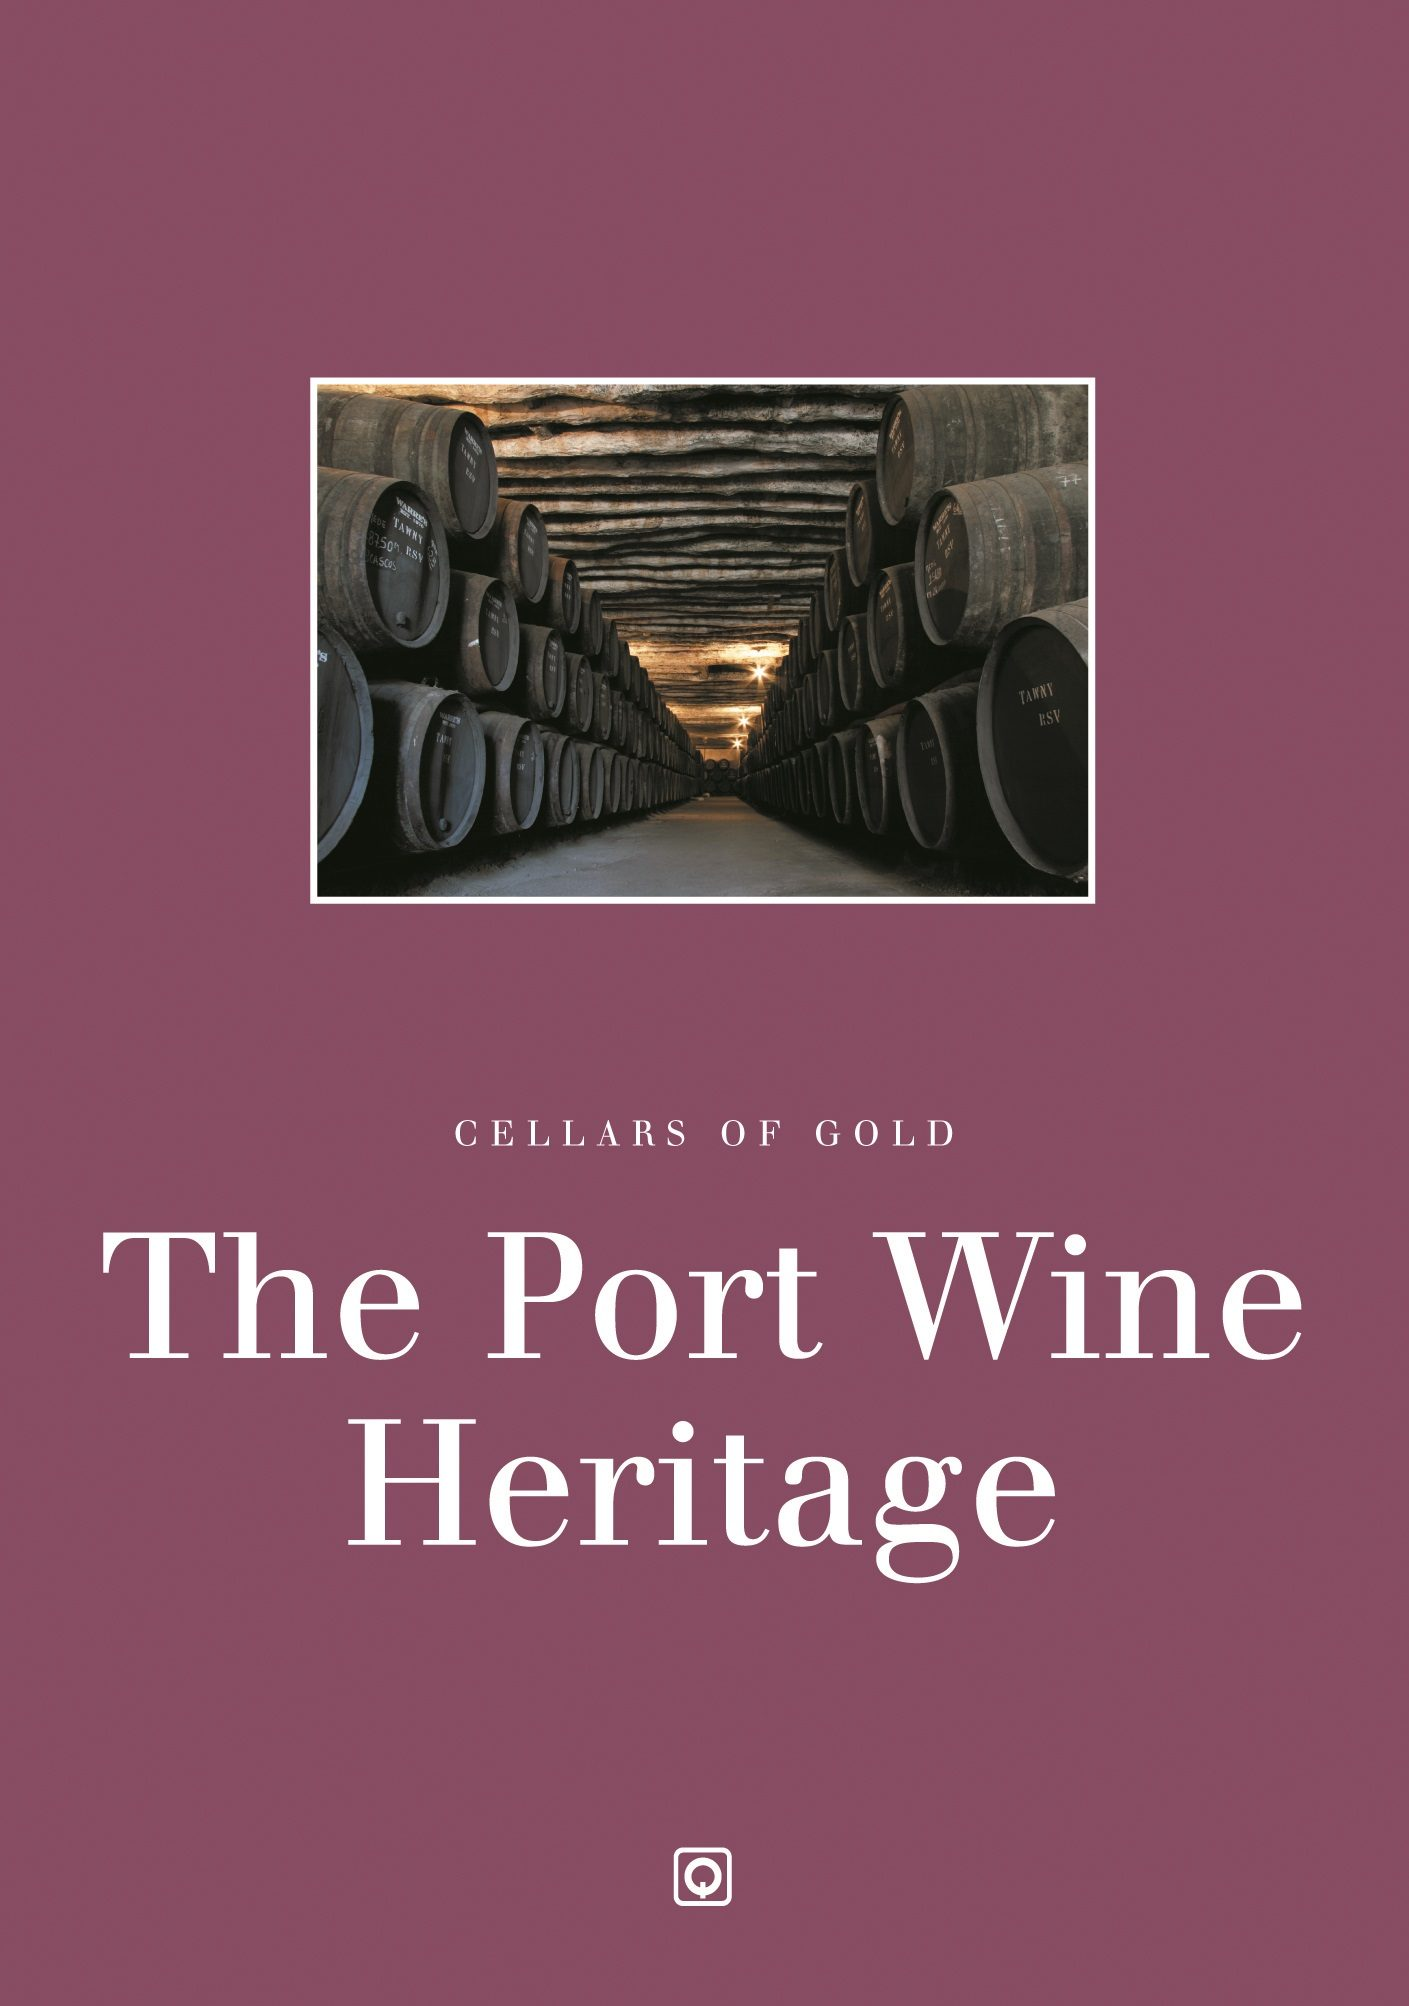 Cellars Of Gold - The Port Wine Heritage - Vv.aa.